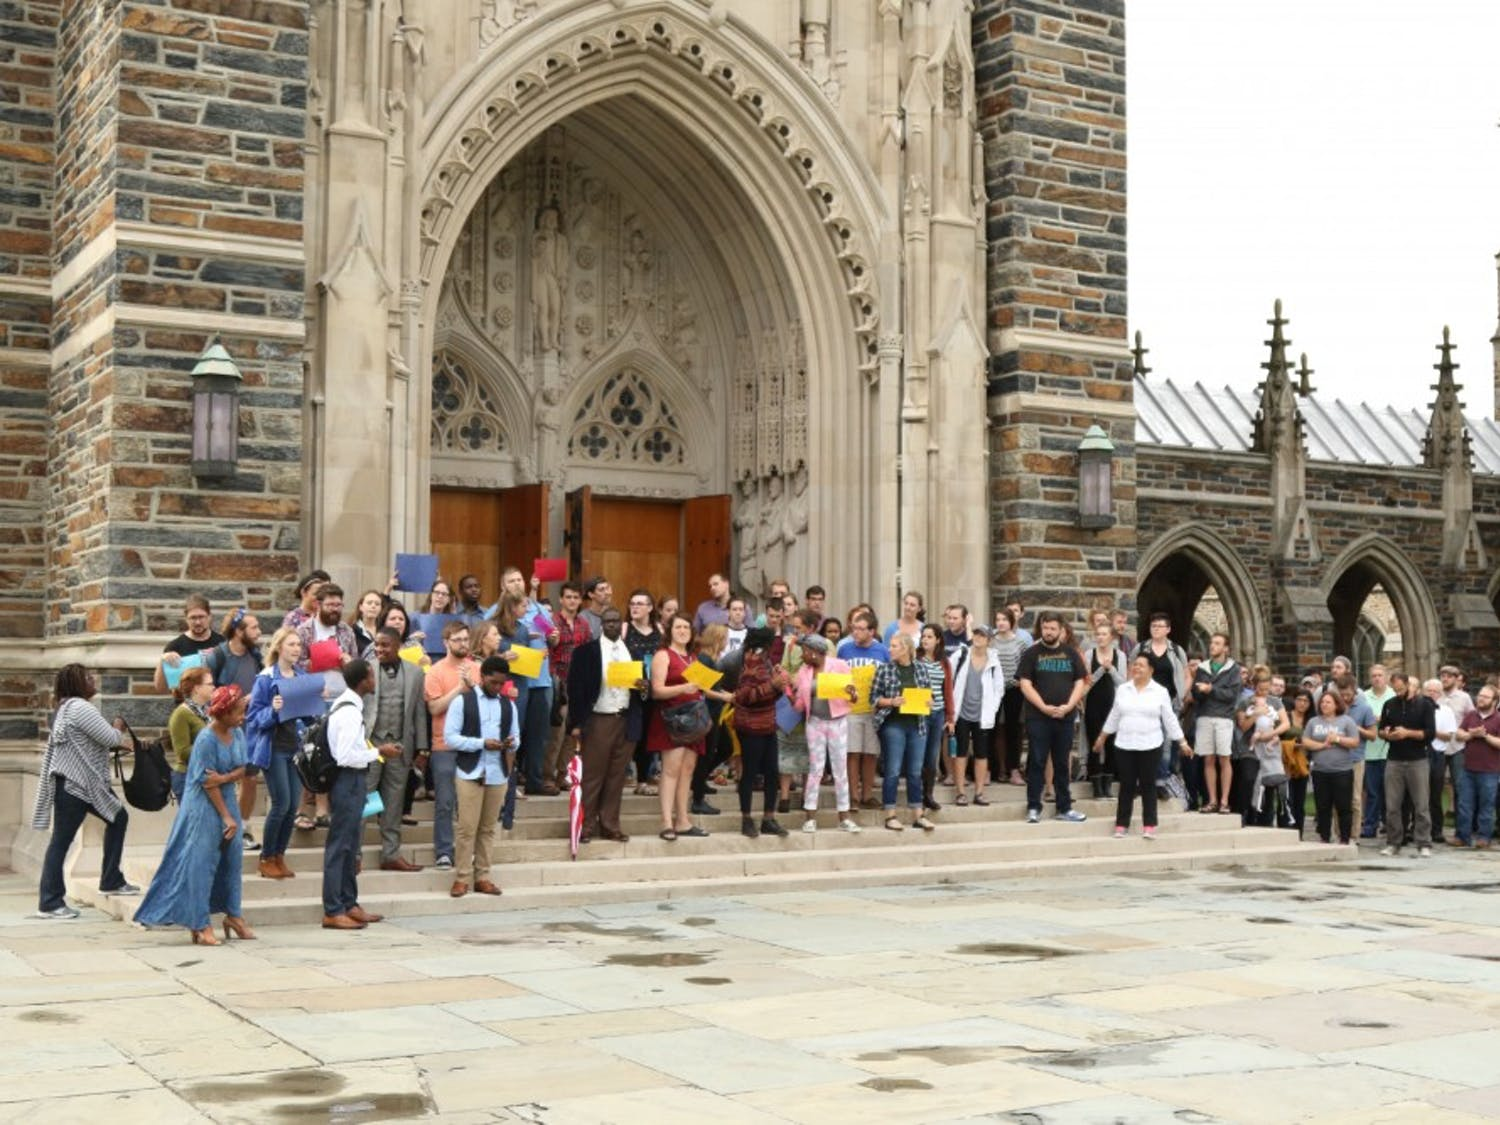 About 100 Divinity School students protested in front of the Chapel Wednesday following the police shooting of Keith Lamont Scott.